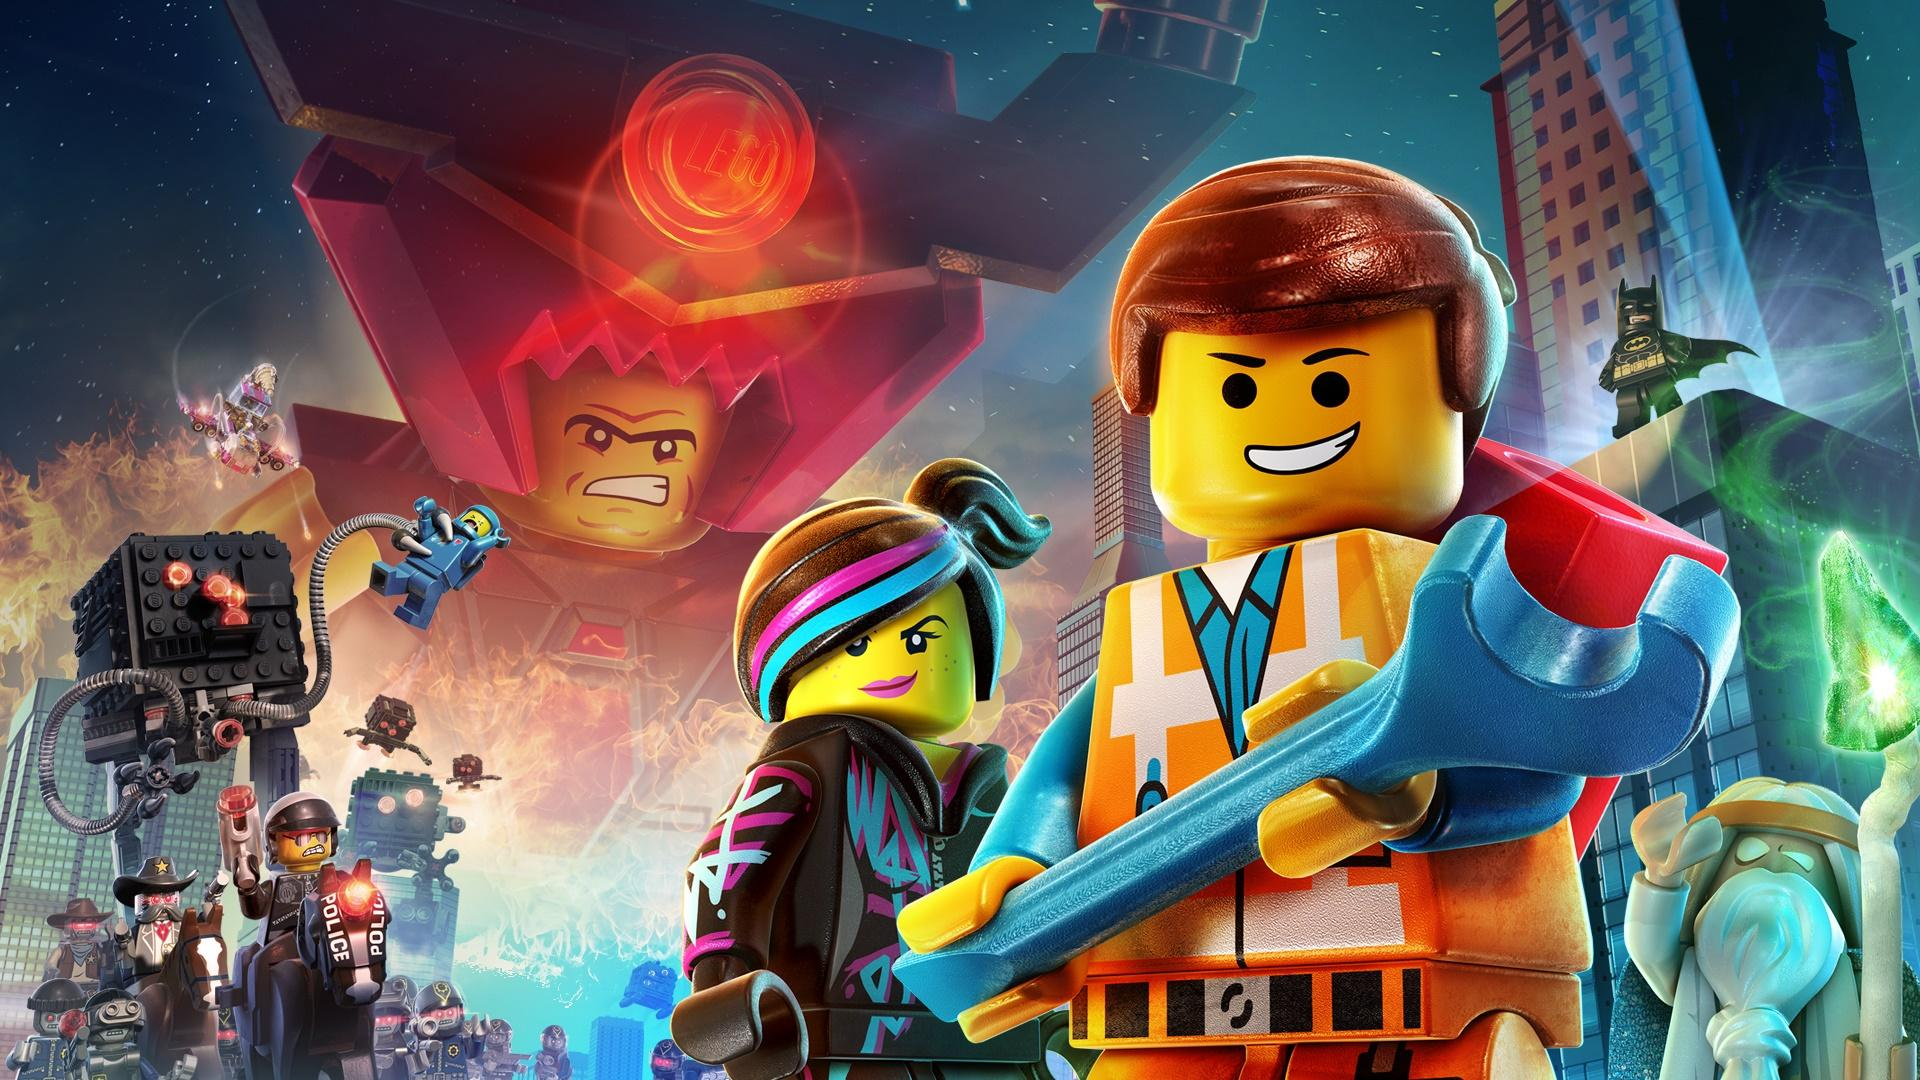 First Official Draft Of Lego Movie 2 Complete